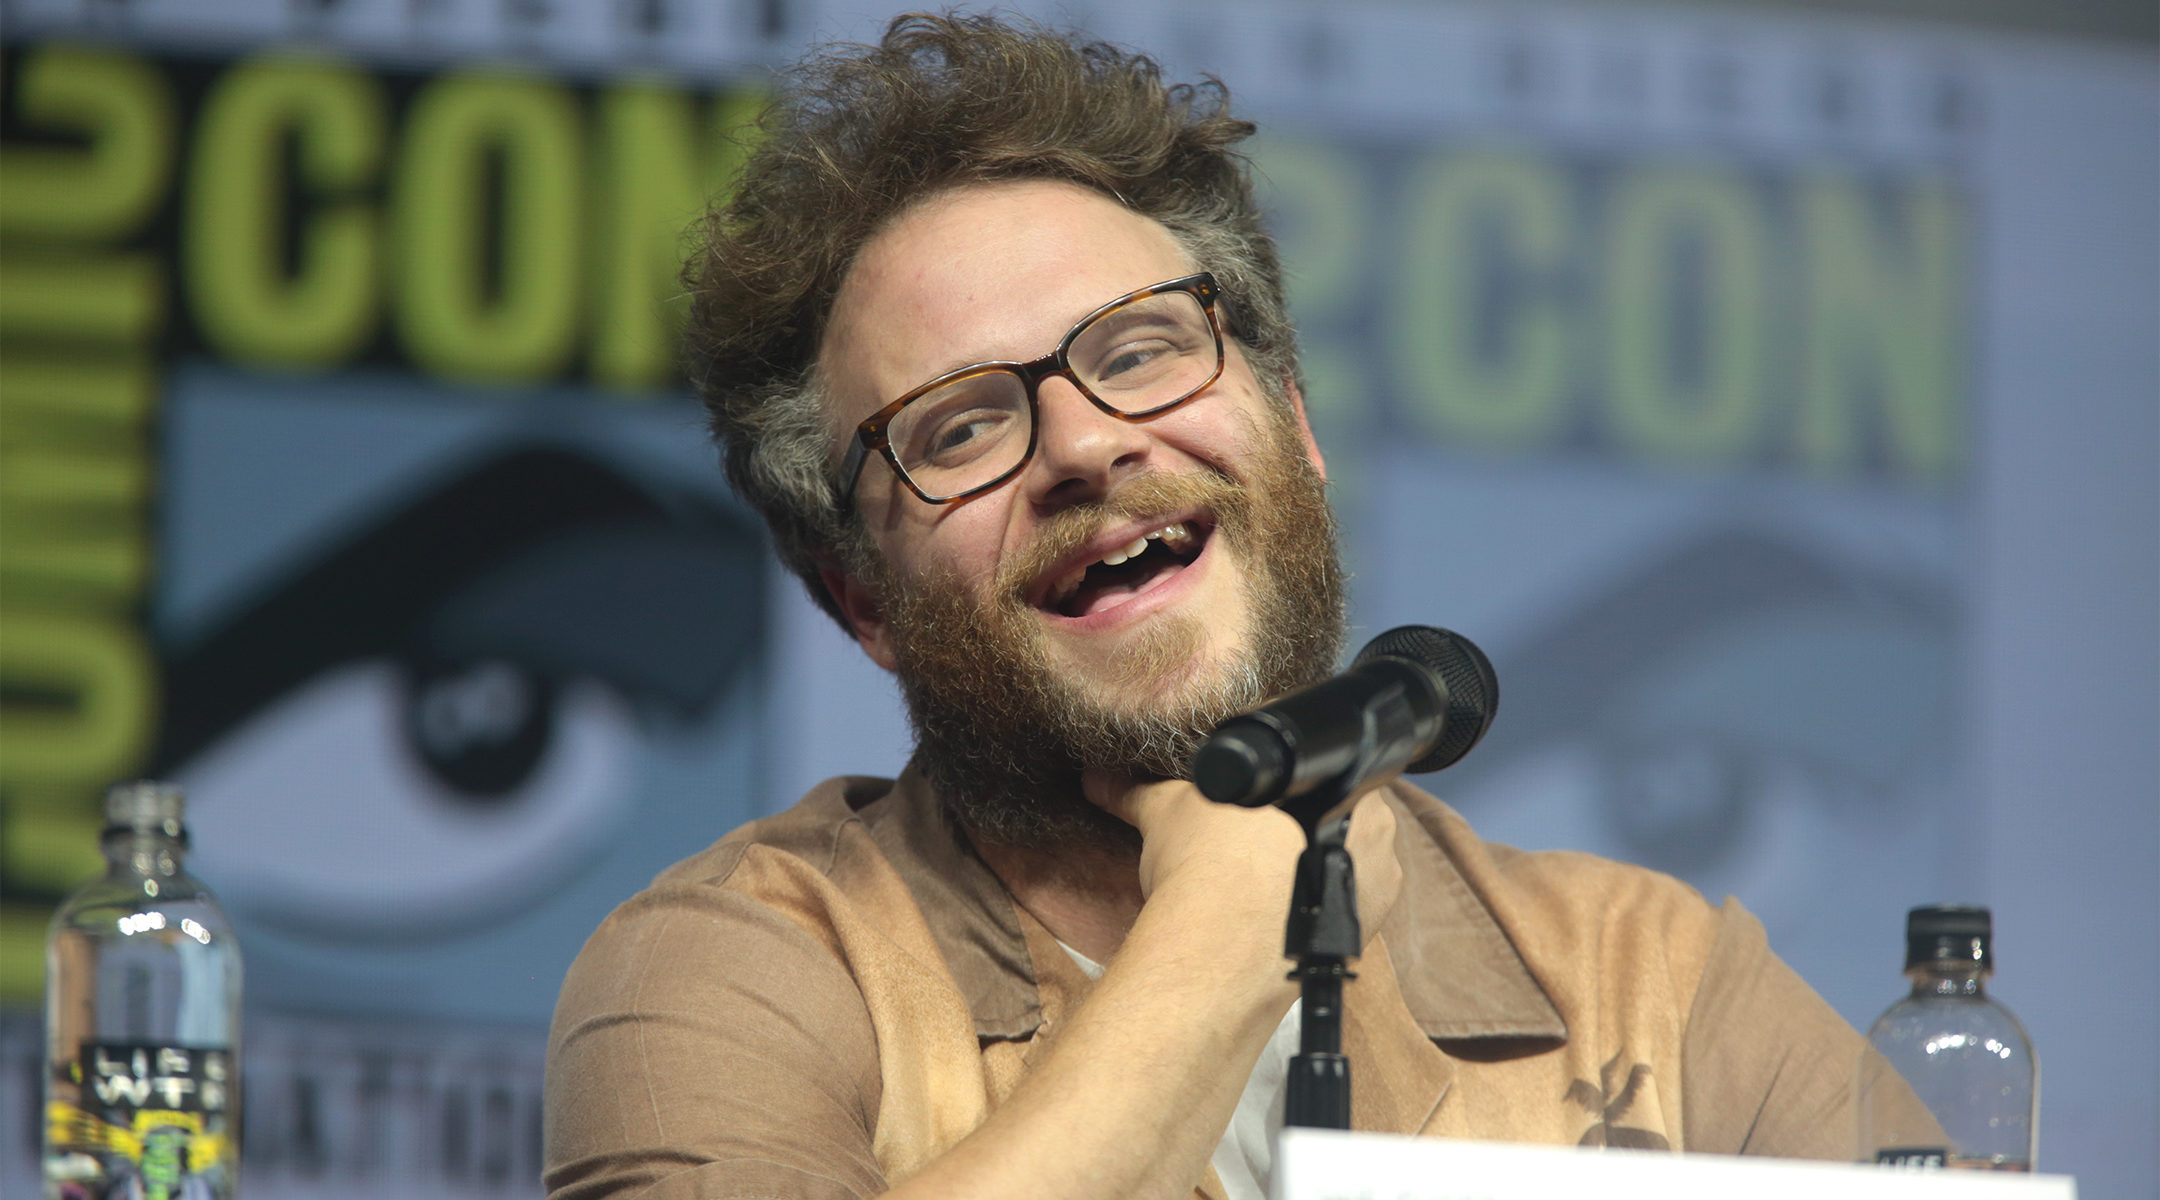 Seth Rogen speaking at the San Diego Comic Con International in San Diego, Californio on July 20, 2018. (Wikimedia Commons/Gage Skidmore)